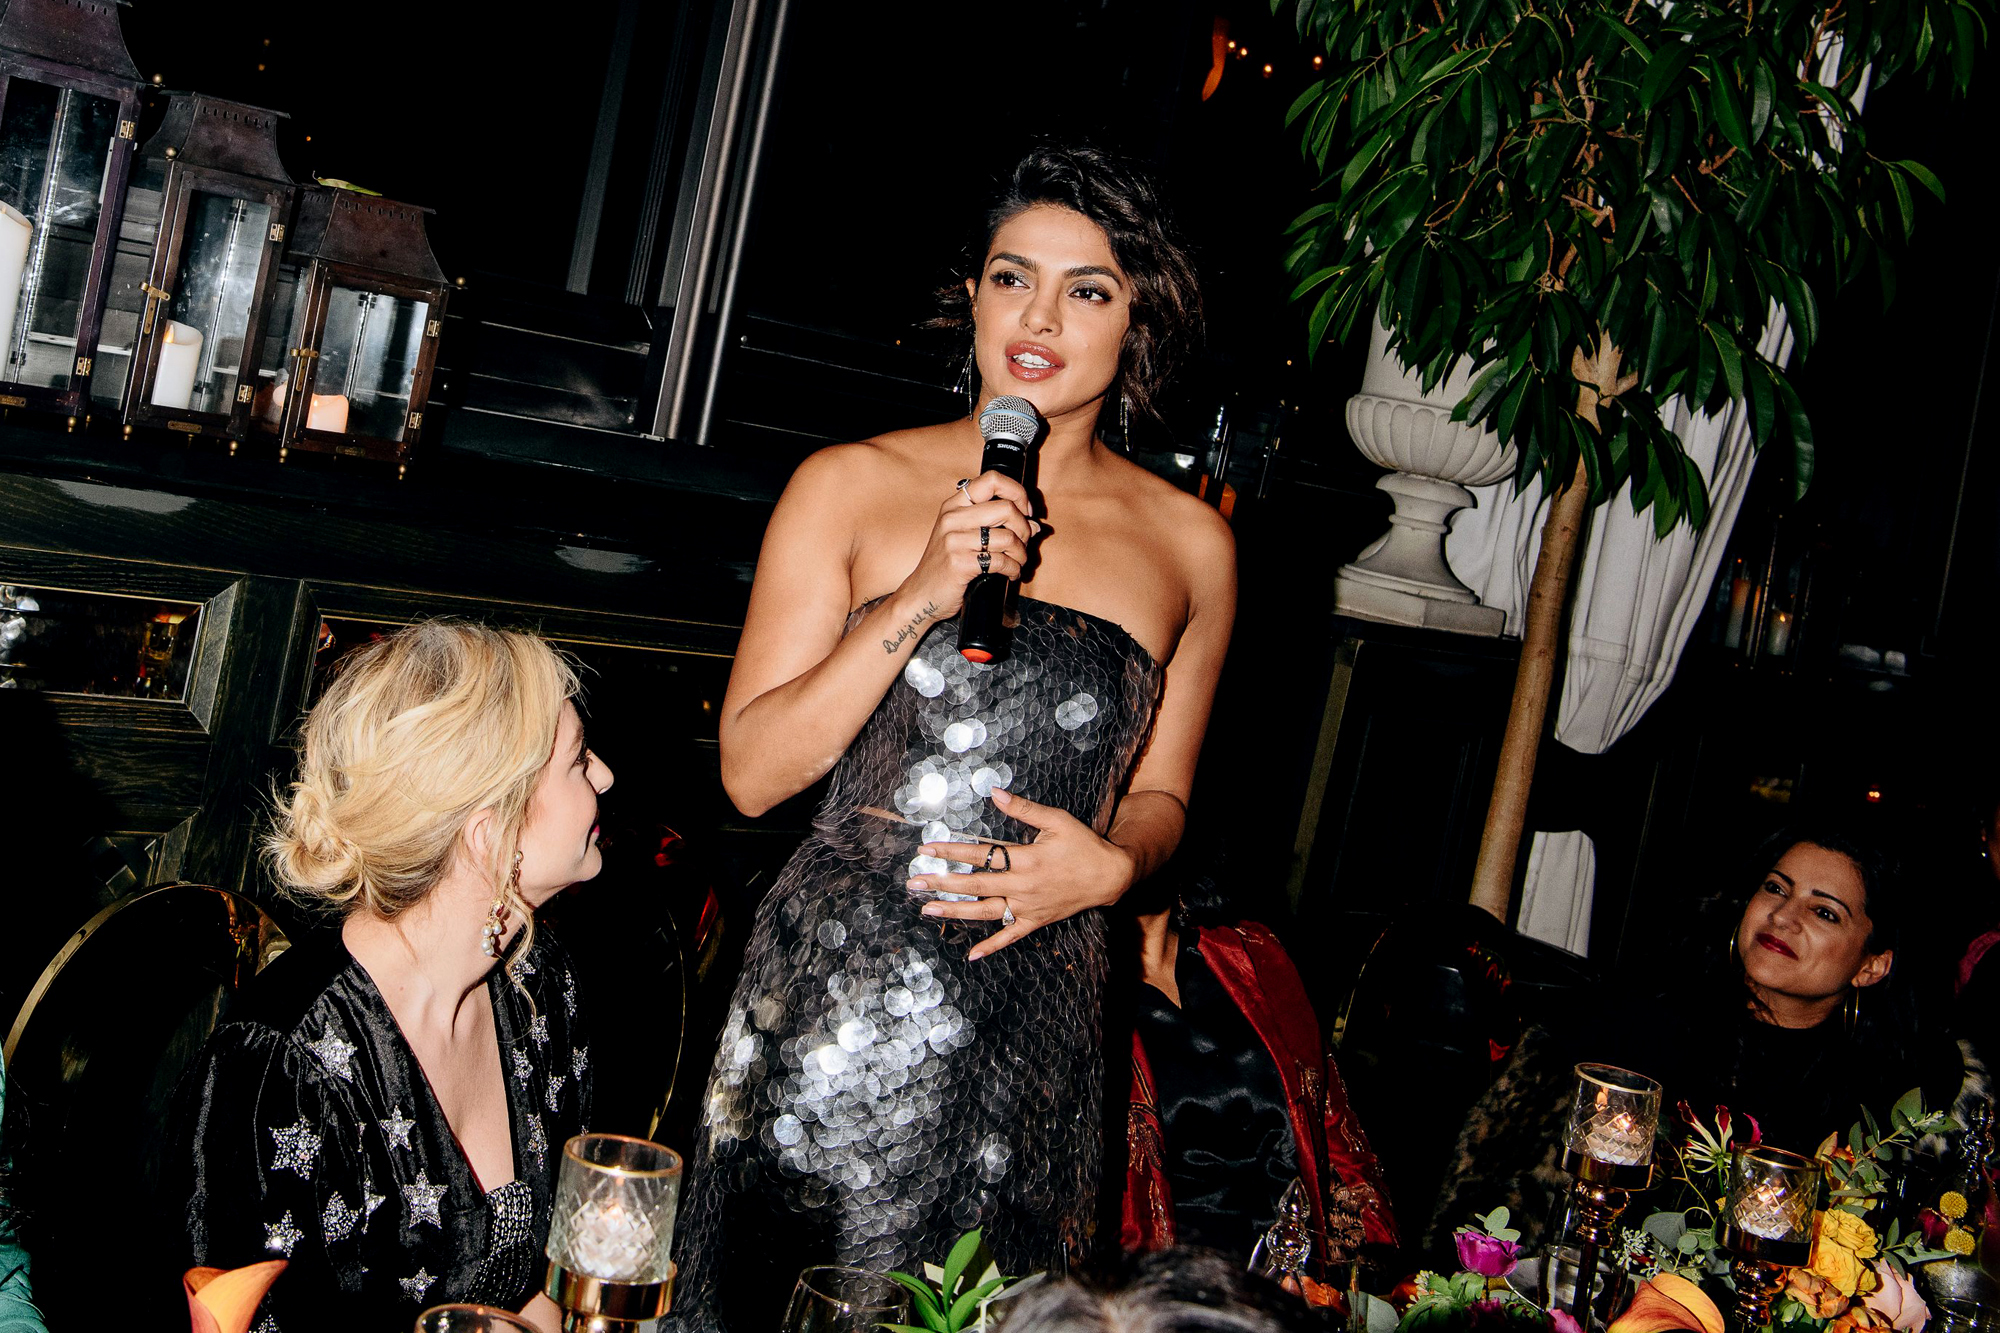 Bumble India Dinner, Gramercy Park Hotel Rooftop, New York, USA - 29 Oct 2018